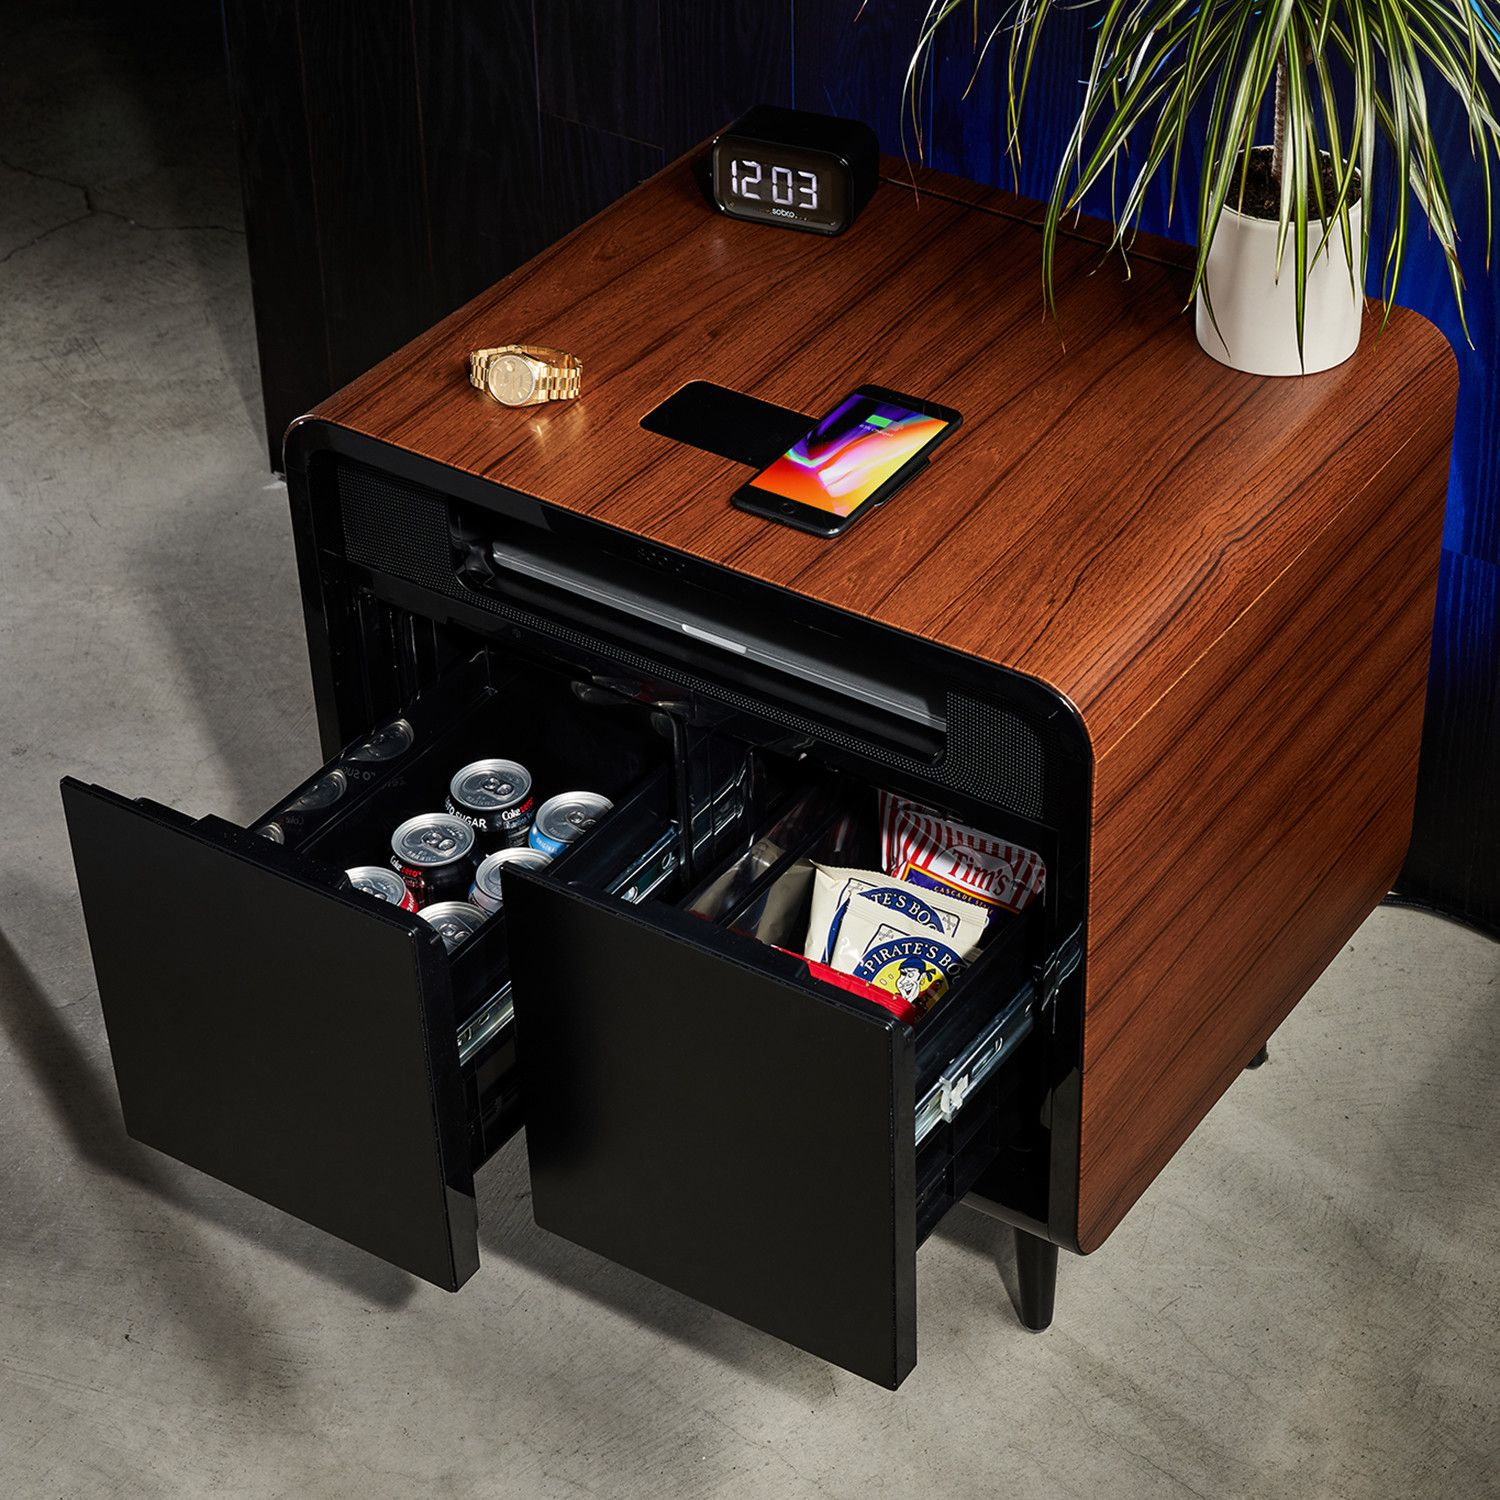 Sobro Side Table in 2020 (With images) Black side table